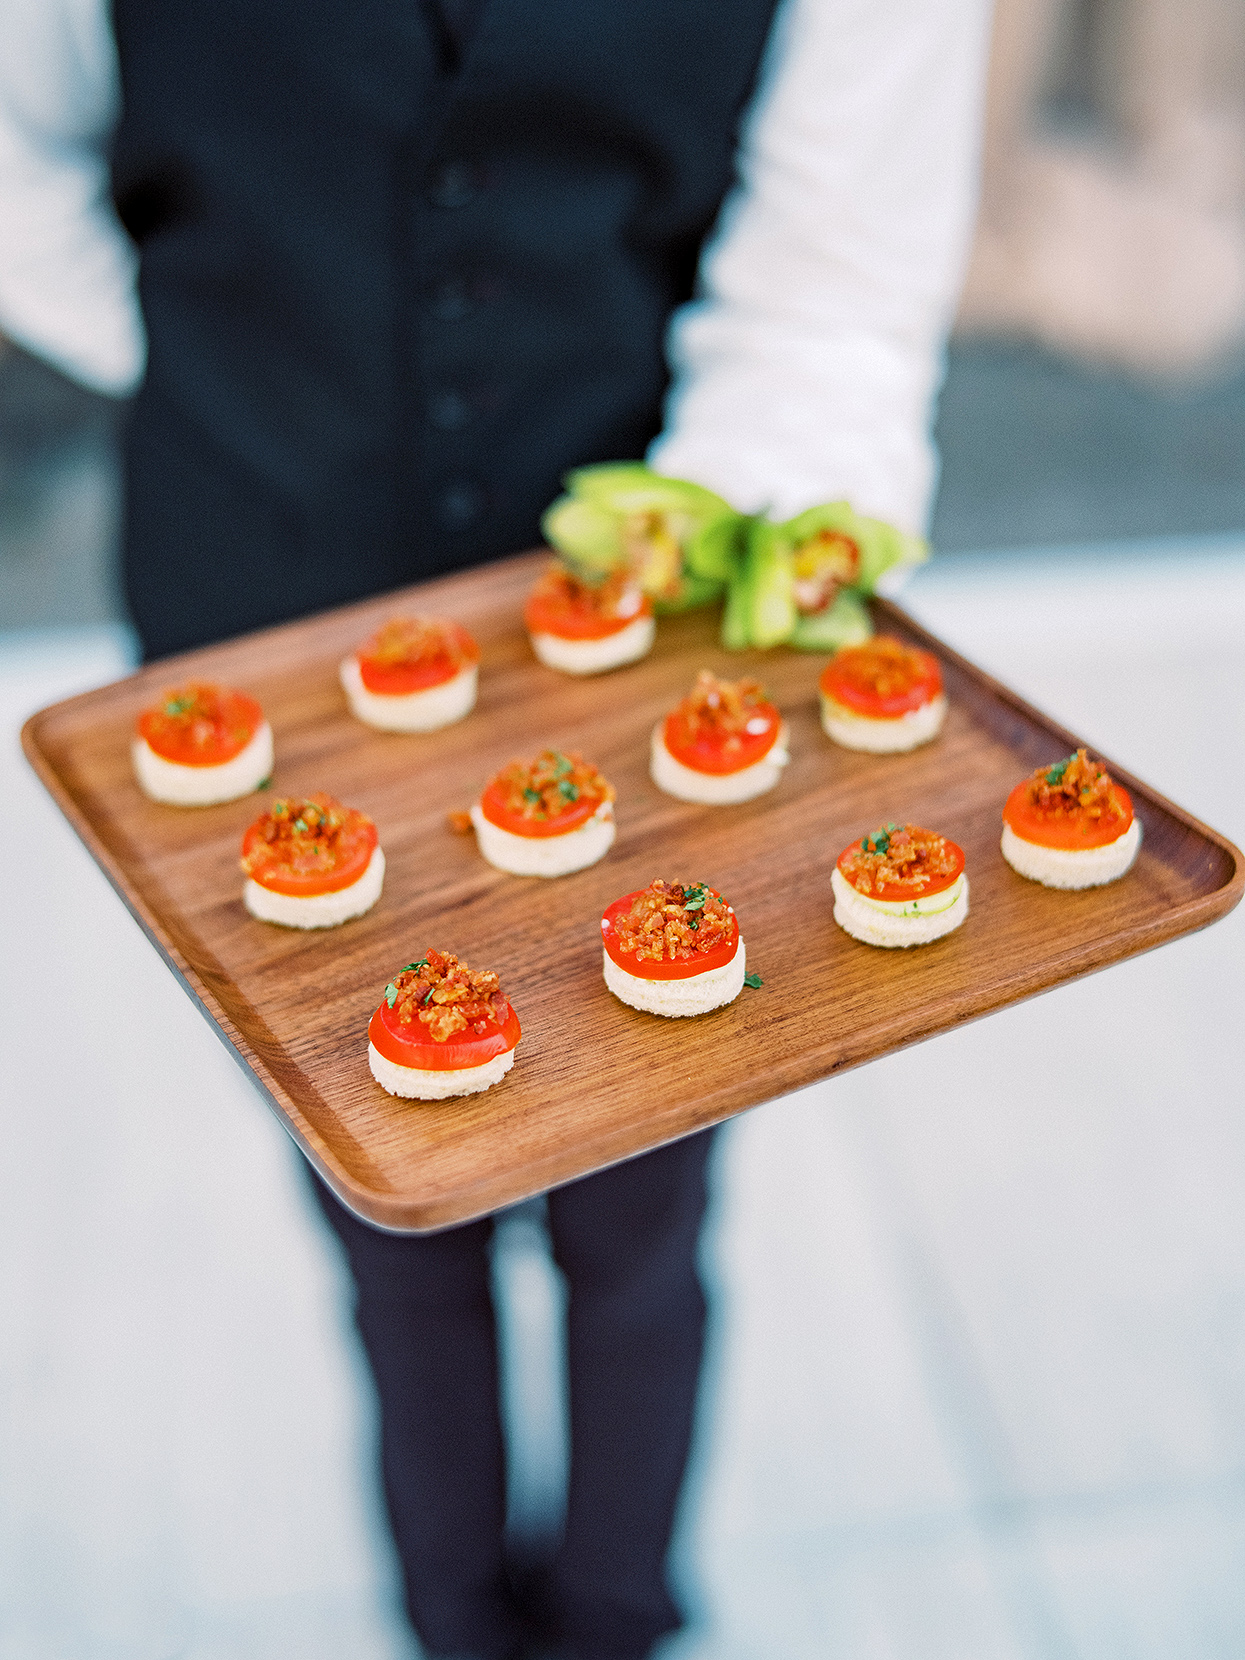 Claire and Dan's reception food tray with mini BLTs